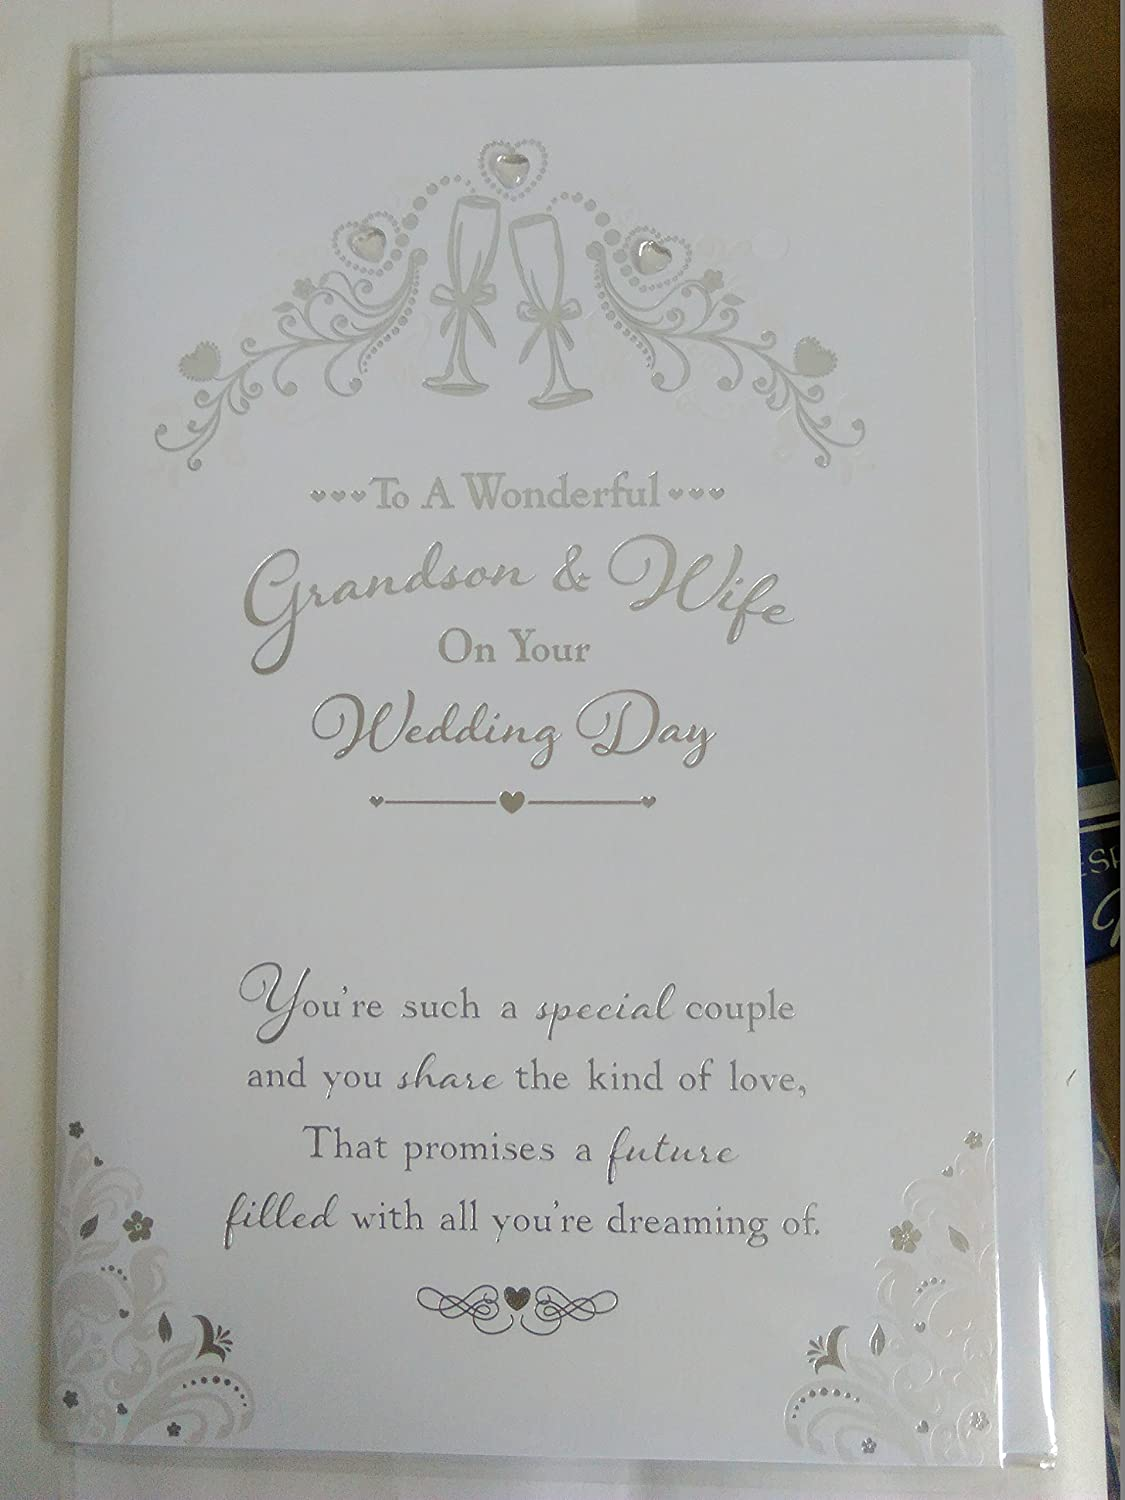 To A Wonderful Grandson & Wife On Your Wedding Day Card White/Silver Words Foil/Gems Detail BGC Studios